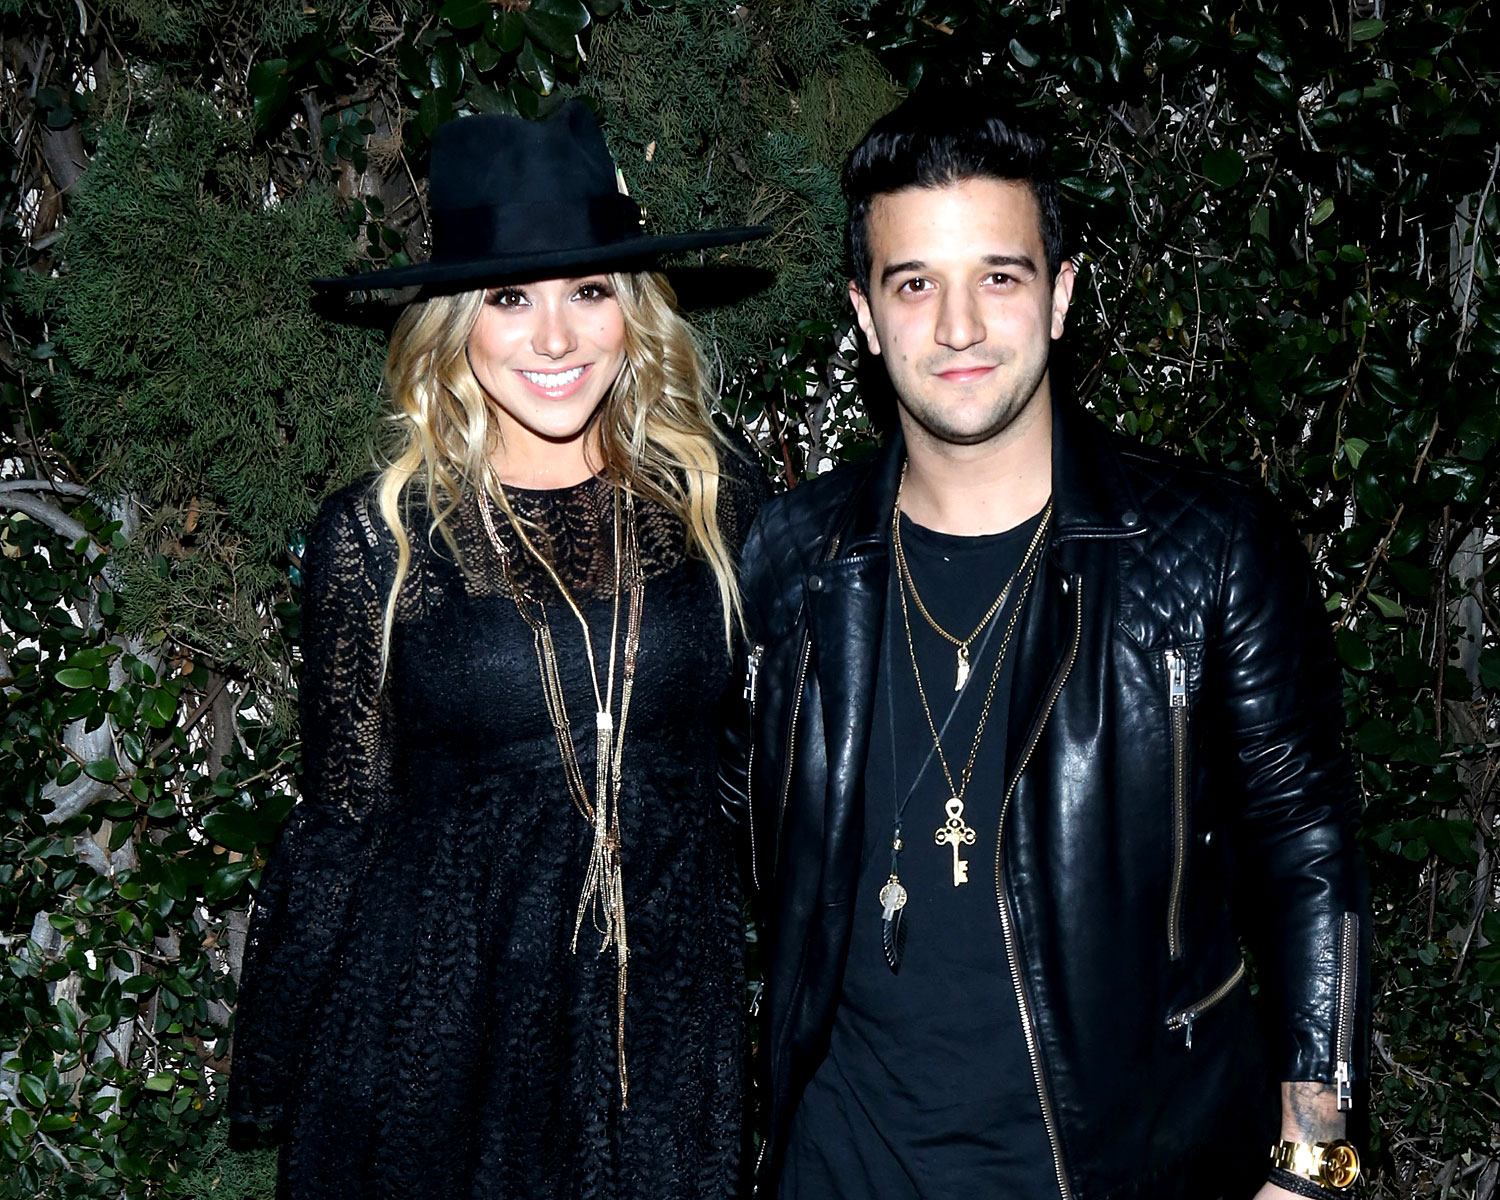 Dancing With The Stars Mark Ballas Shares First Wedding Photo